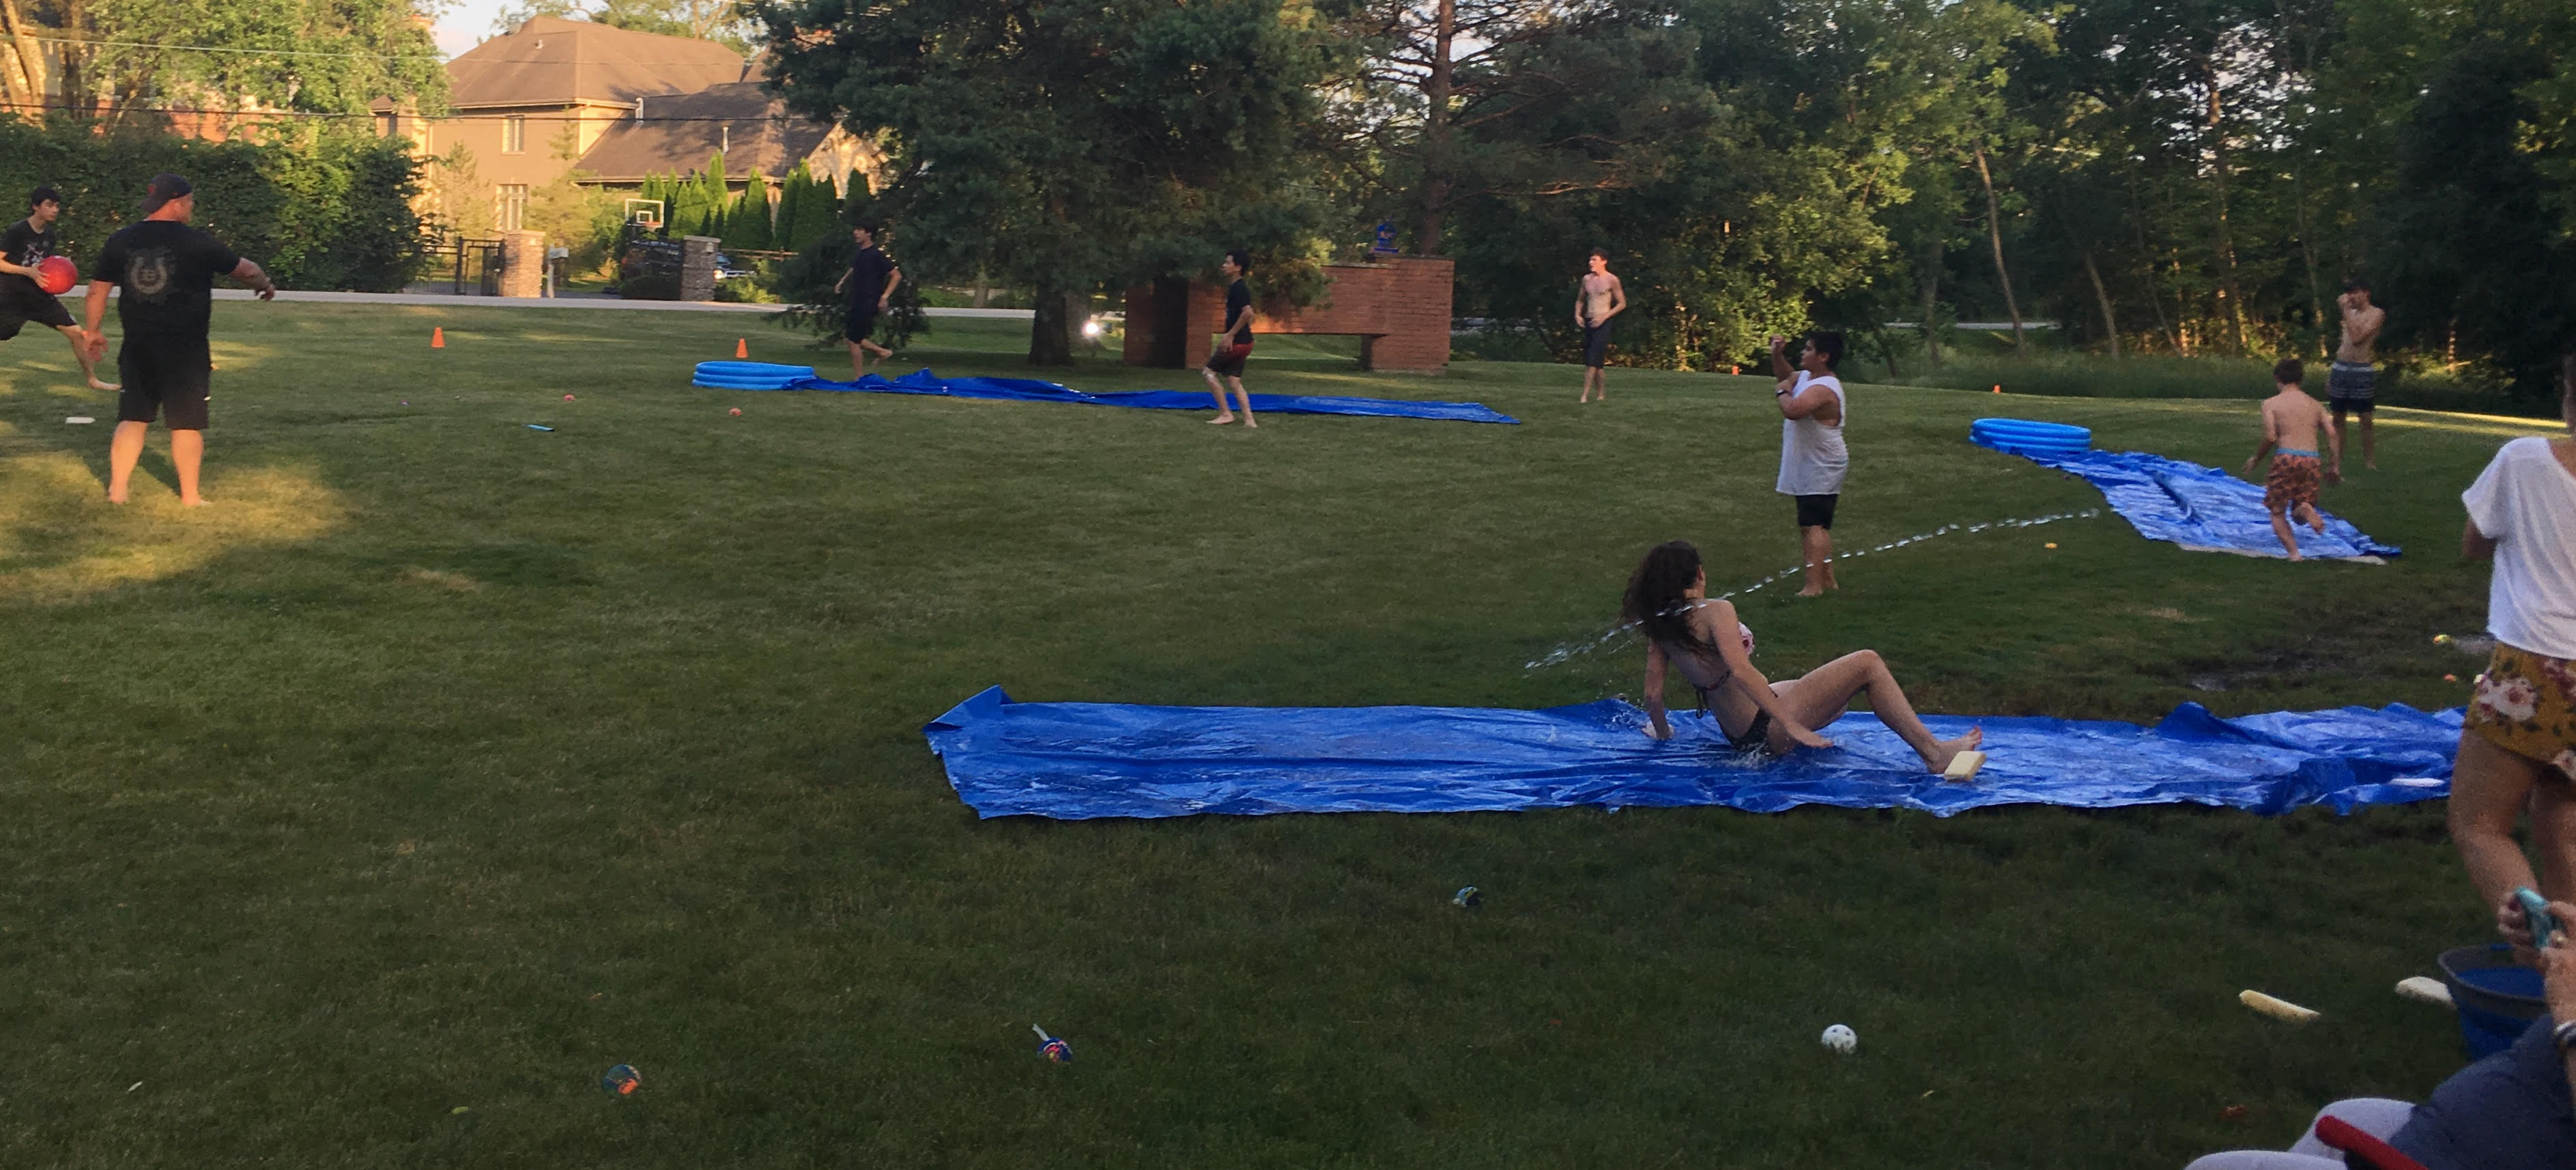 Lock-In Slip n Slide Fun